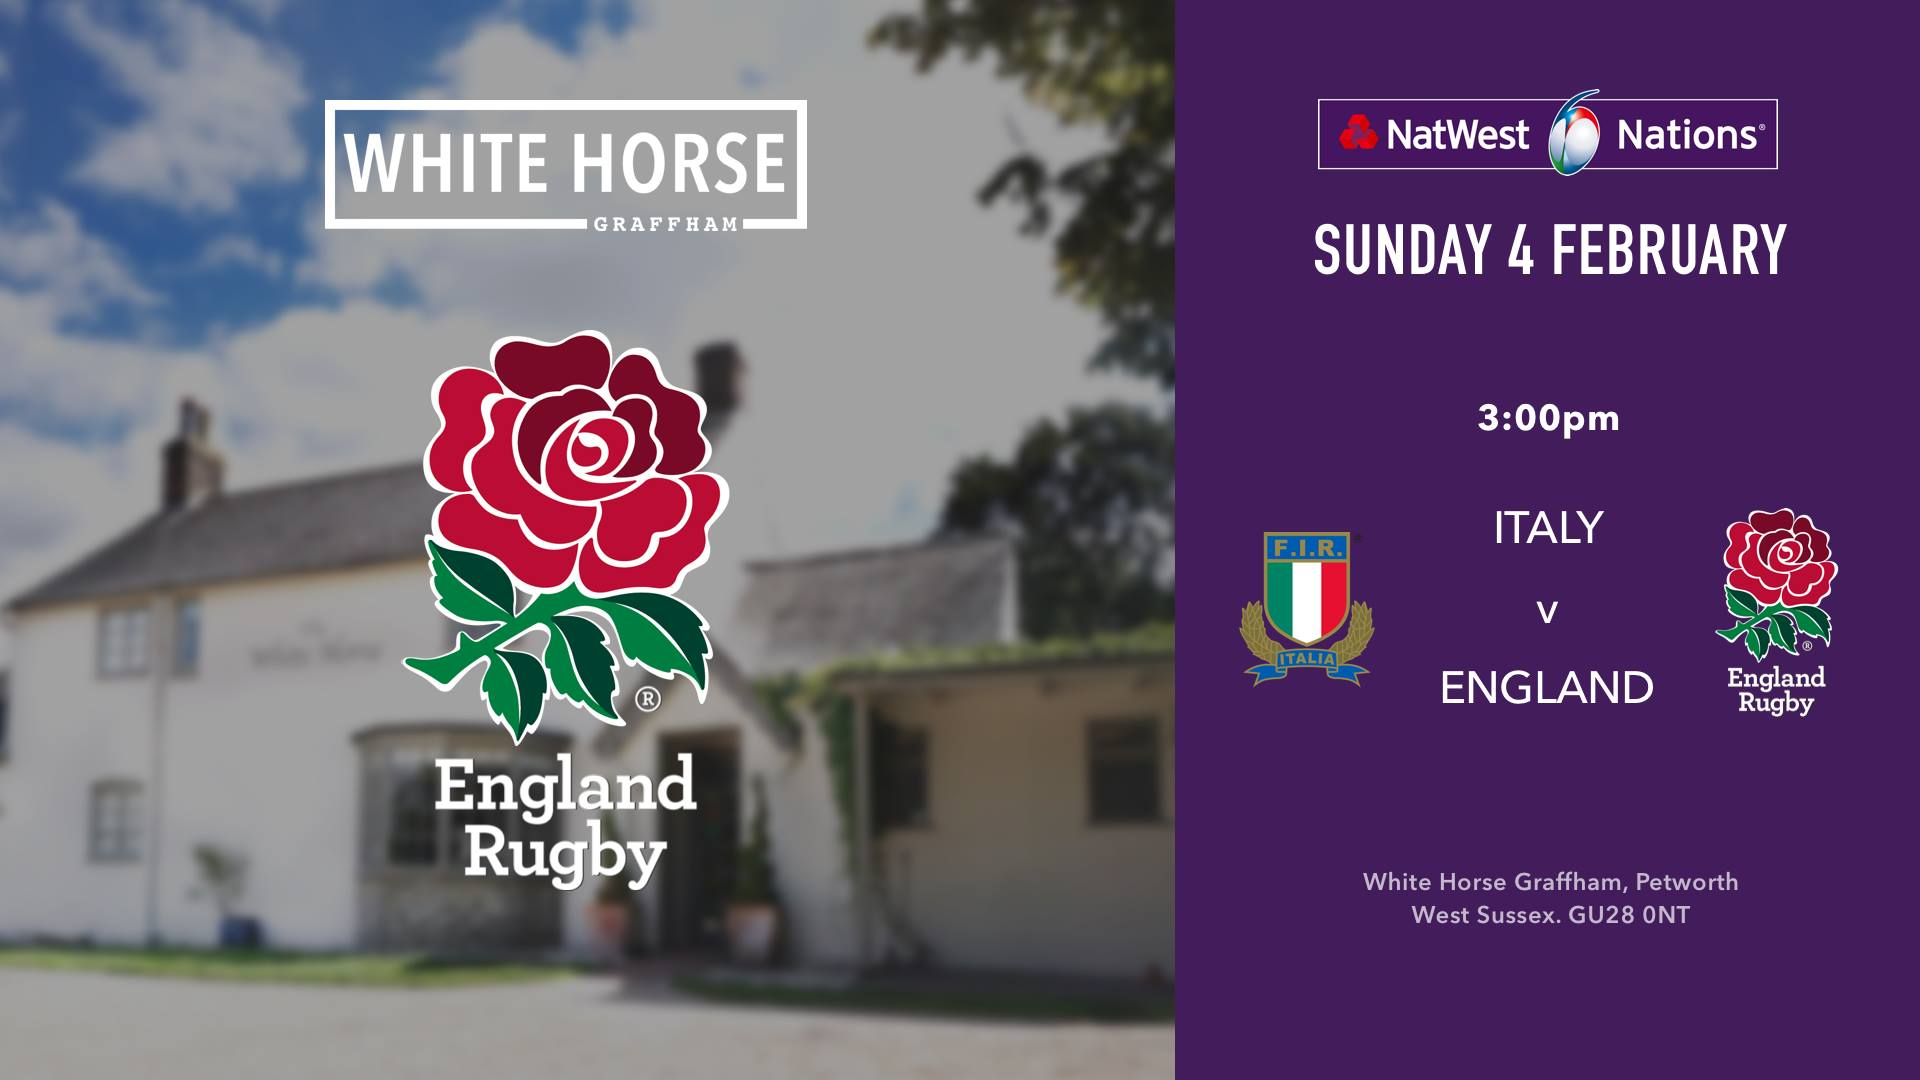 England v Italy: 6 Nations Rugby at the White Horse Graffham